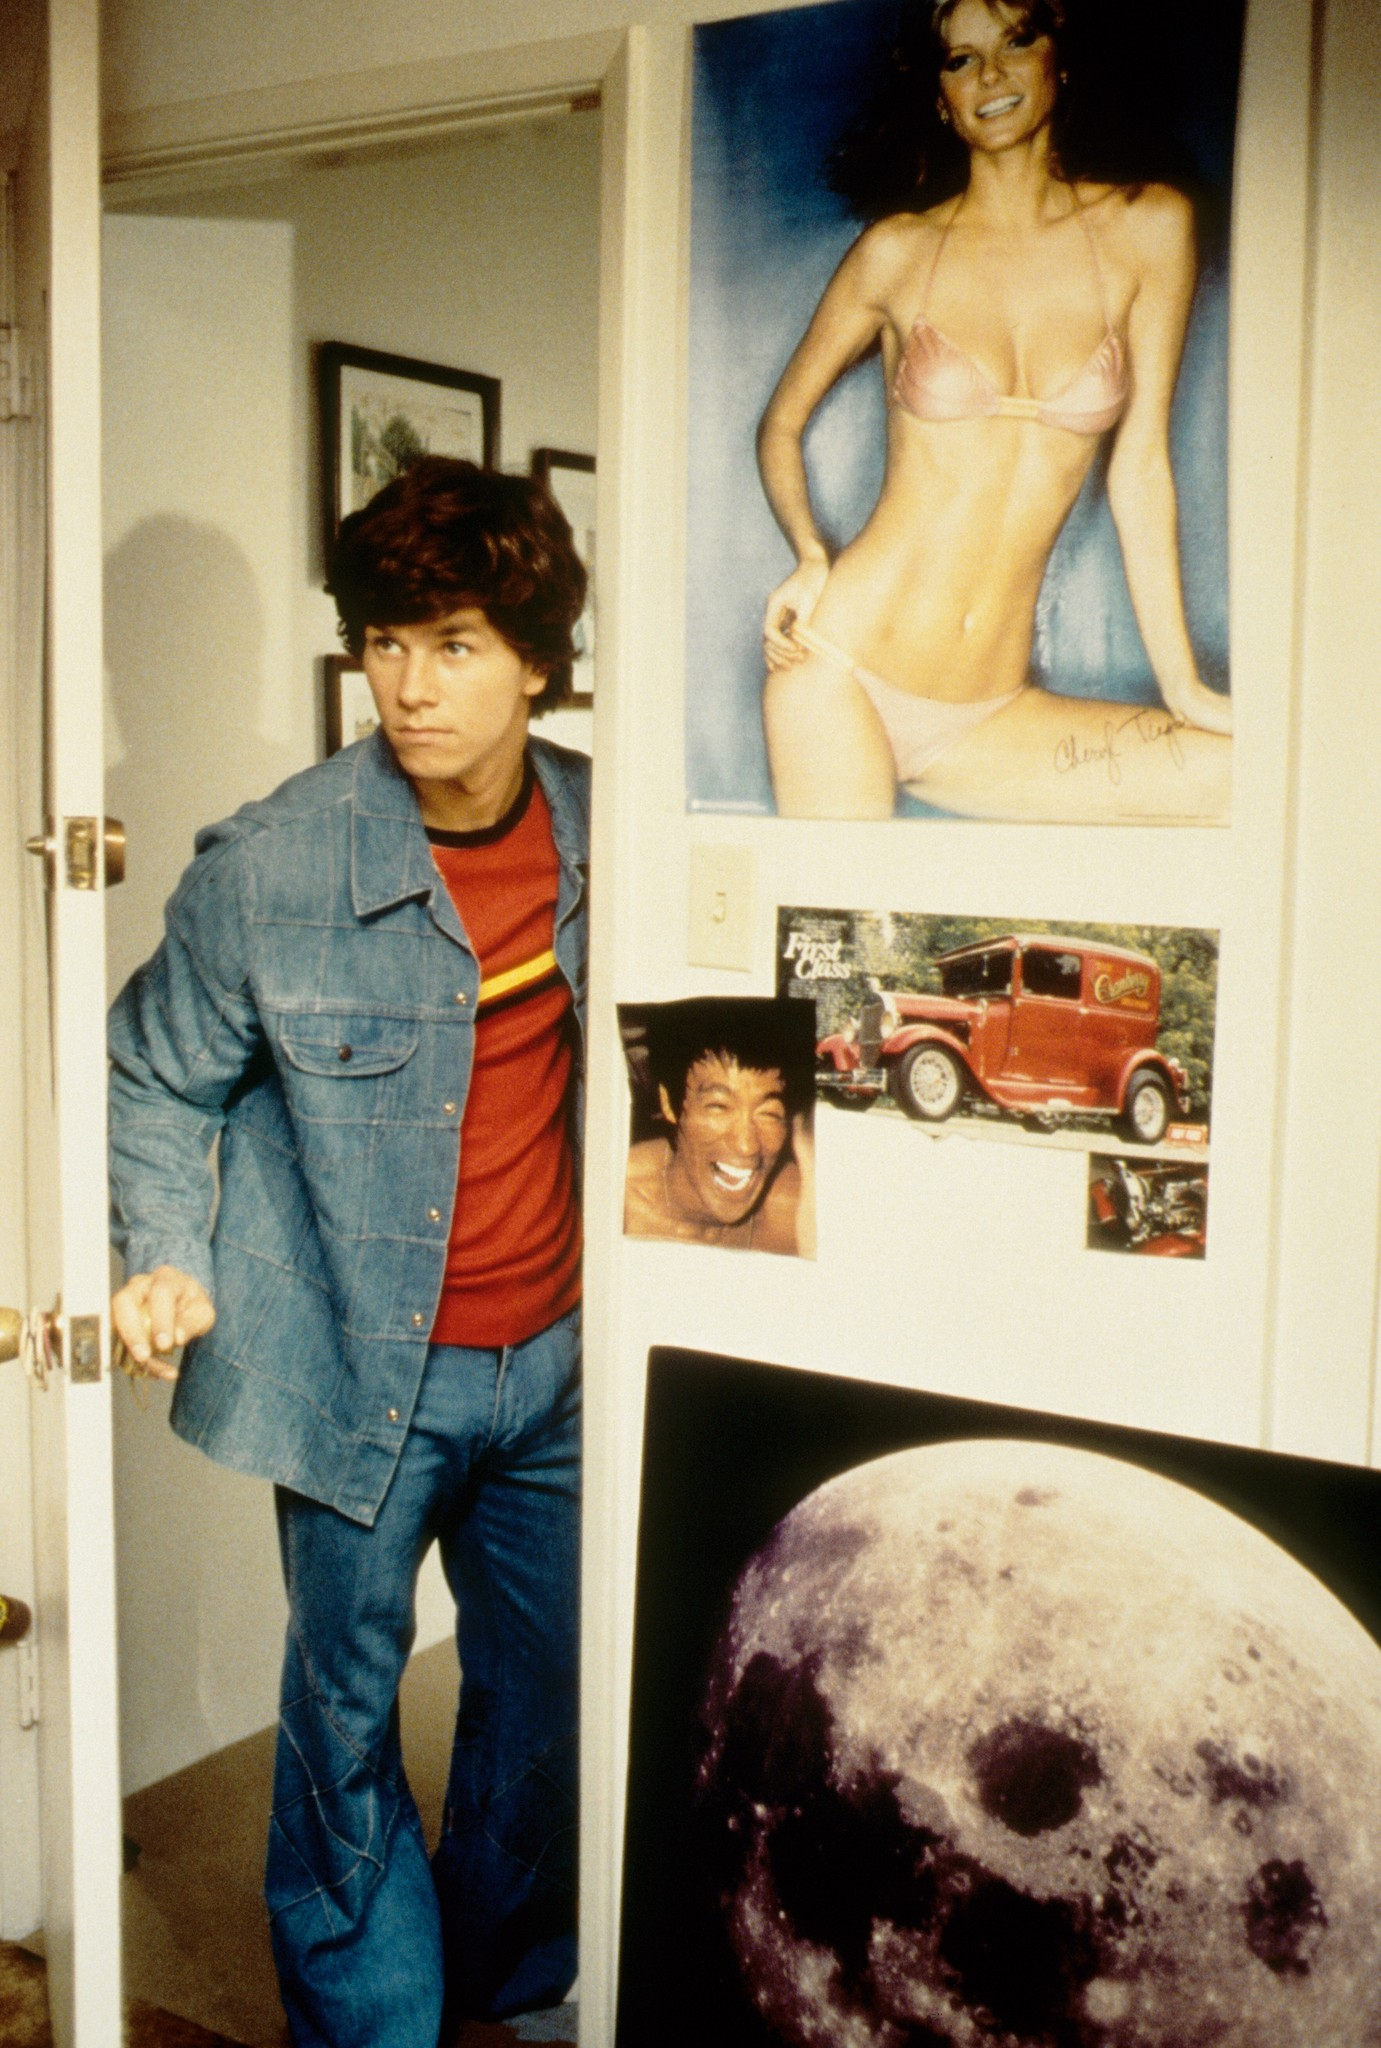 Mark Wahlberg and Cheryl Tiegs in Boogie Nights (1997)